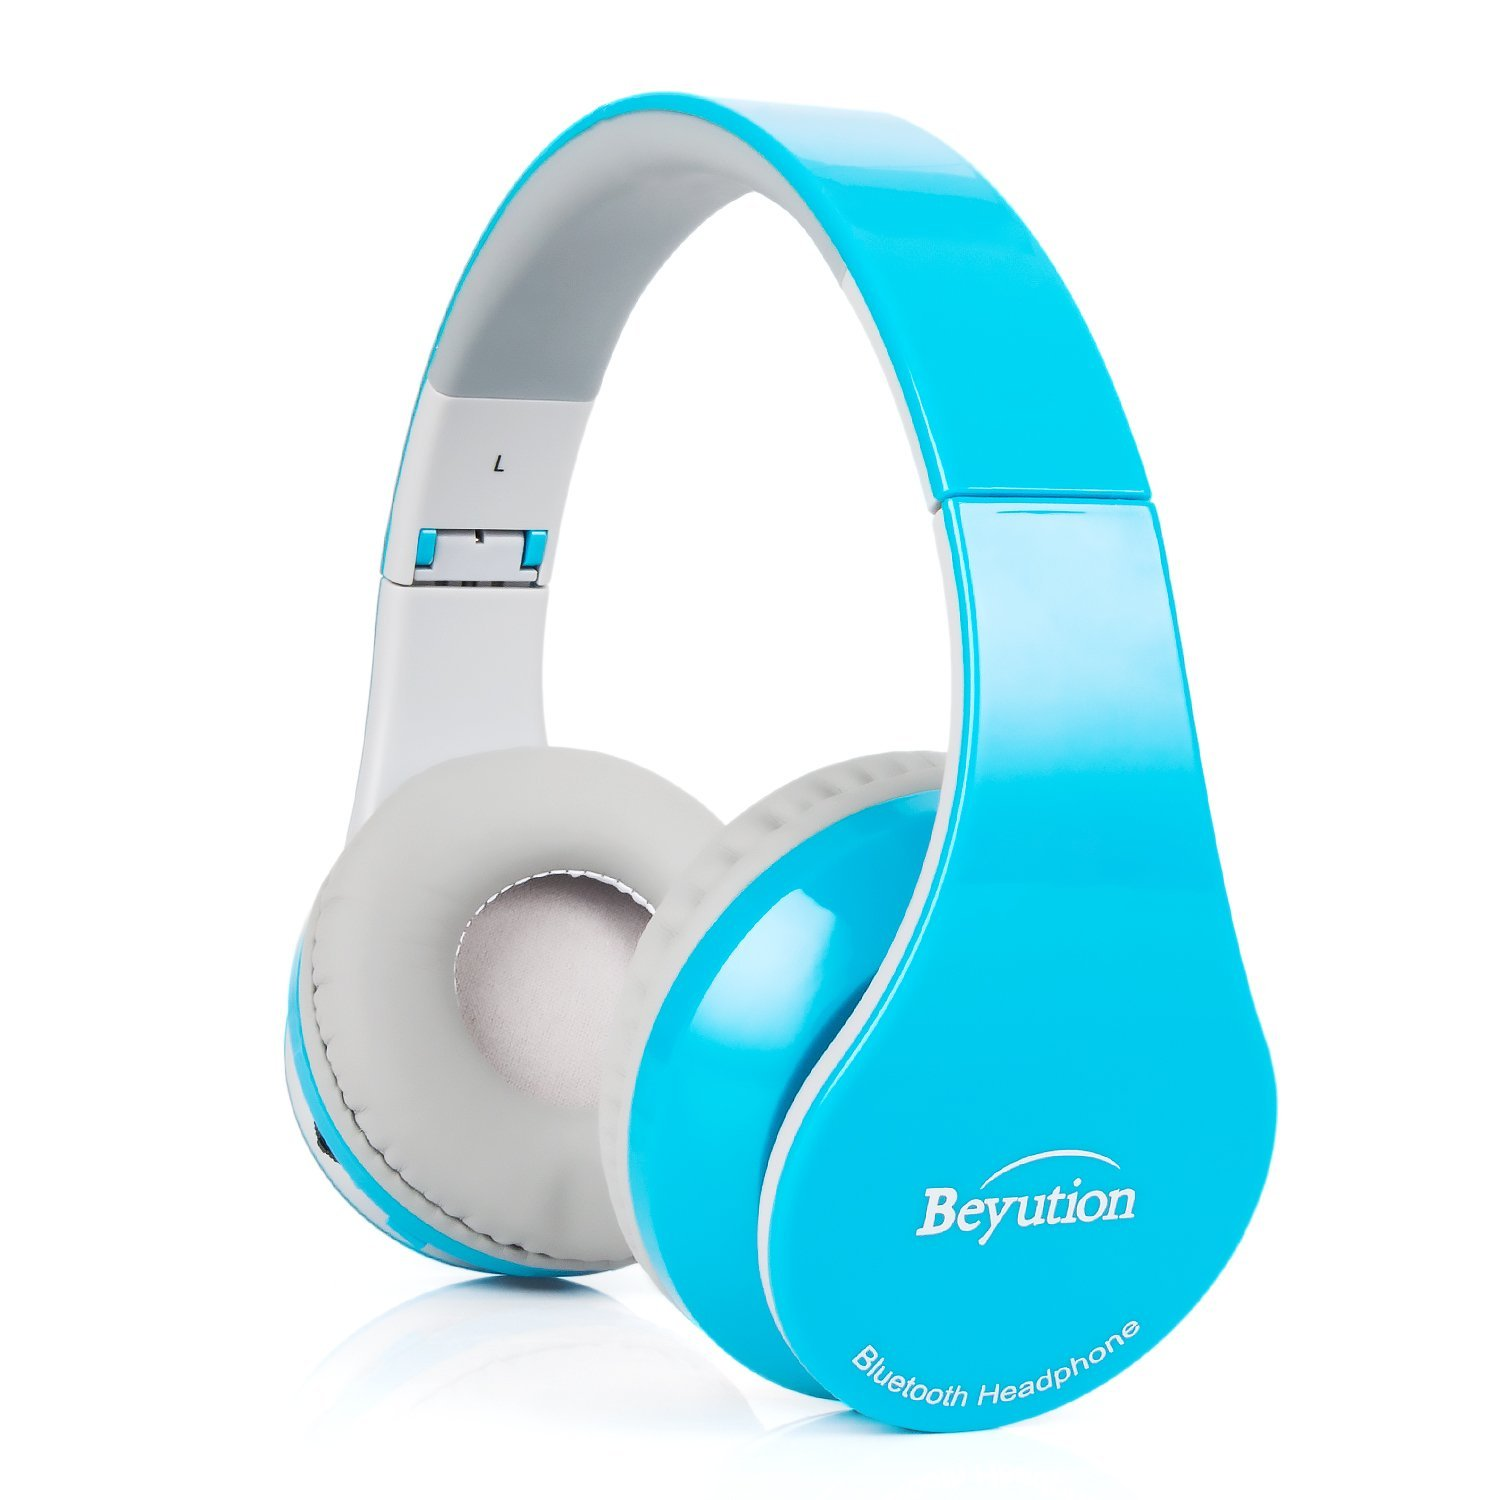 Back to School Gift-New Blue Color Beyution513@ Over-Ear- HiFi Stereo Clear Mic-Phone- Bluetooth Headphones-with Retail Package!